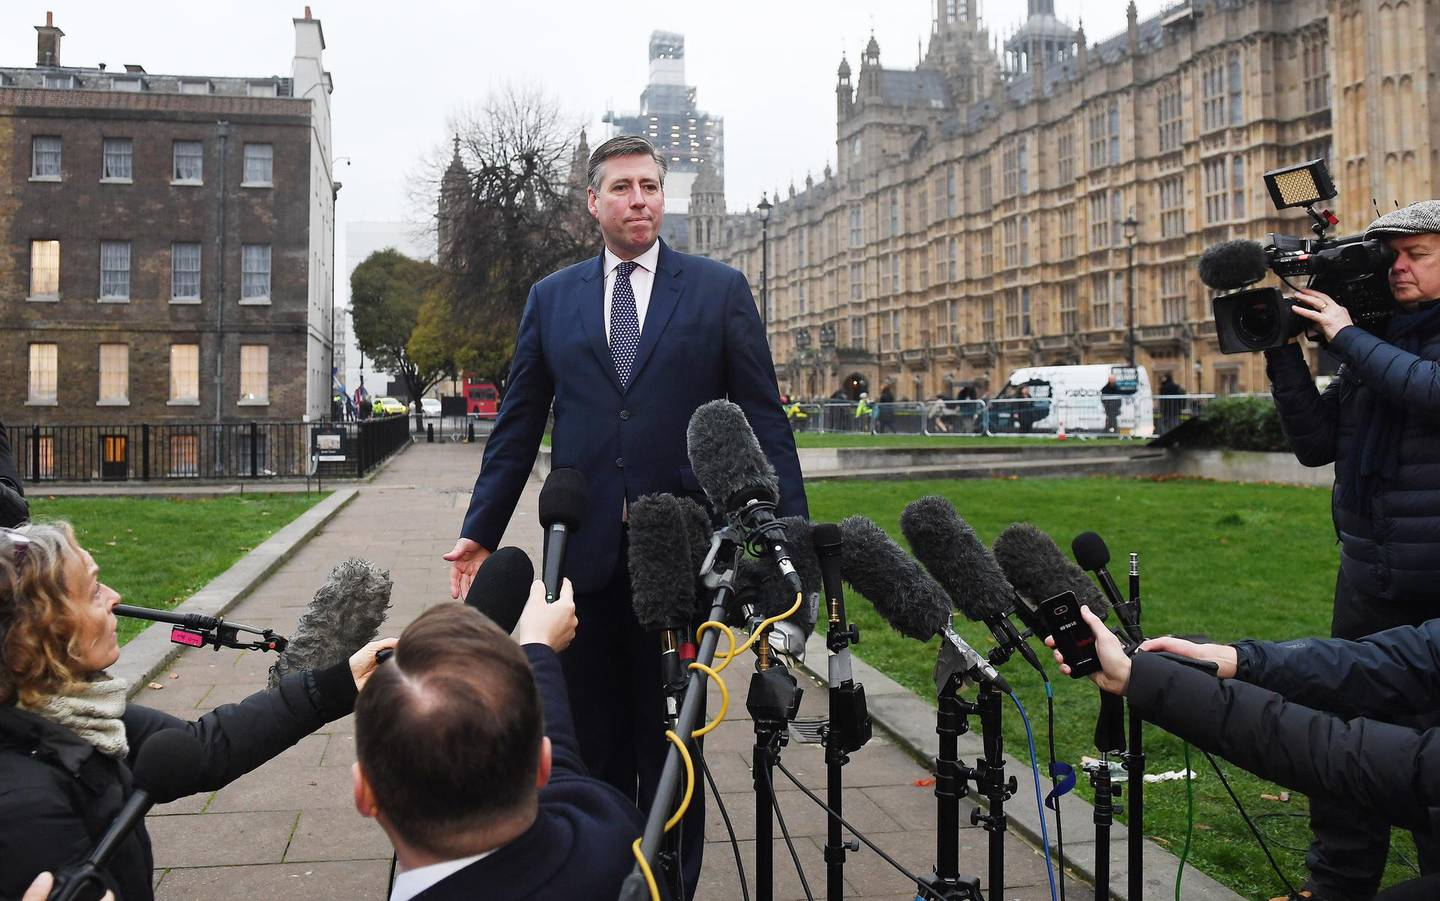 epa07225203 Chariman of the 1922 Committee Sir Graham Brady speaks to the media outside parliament in London, Britain, 12 December 2018. Theresa May will face a challenge to her leadership on 12 December 2018 after 48 letters calling for a contest were delivered to the Chariman of the 1922 Committee. May will find out her future after Conservative Members of Parliament vote between 18:00 GMT and 20:00 GMT later in the evening.  EPA/ANDY RAIN